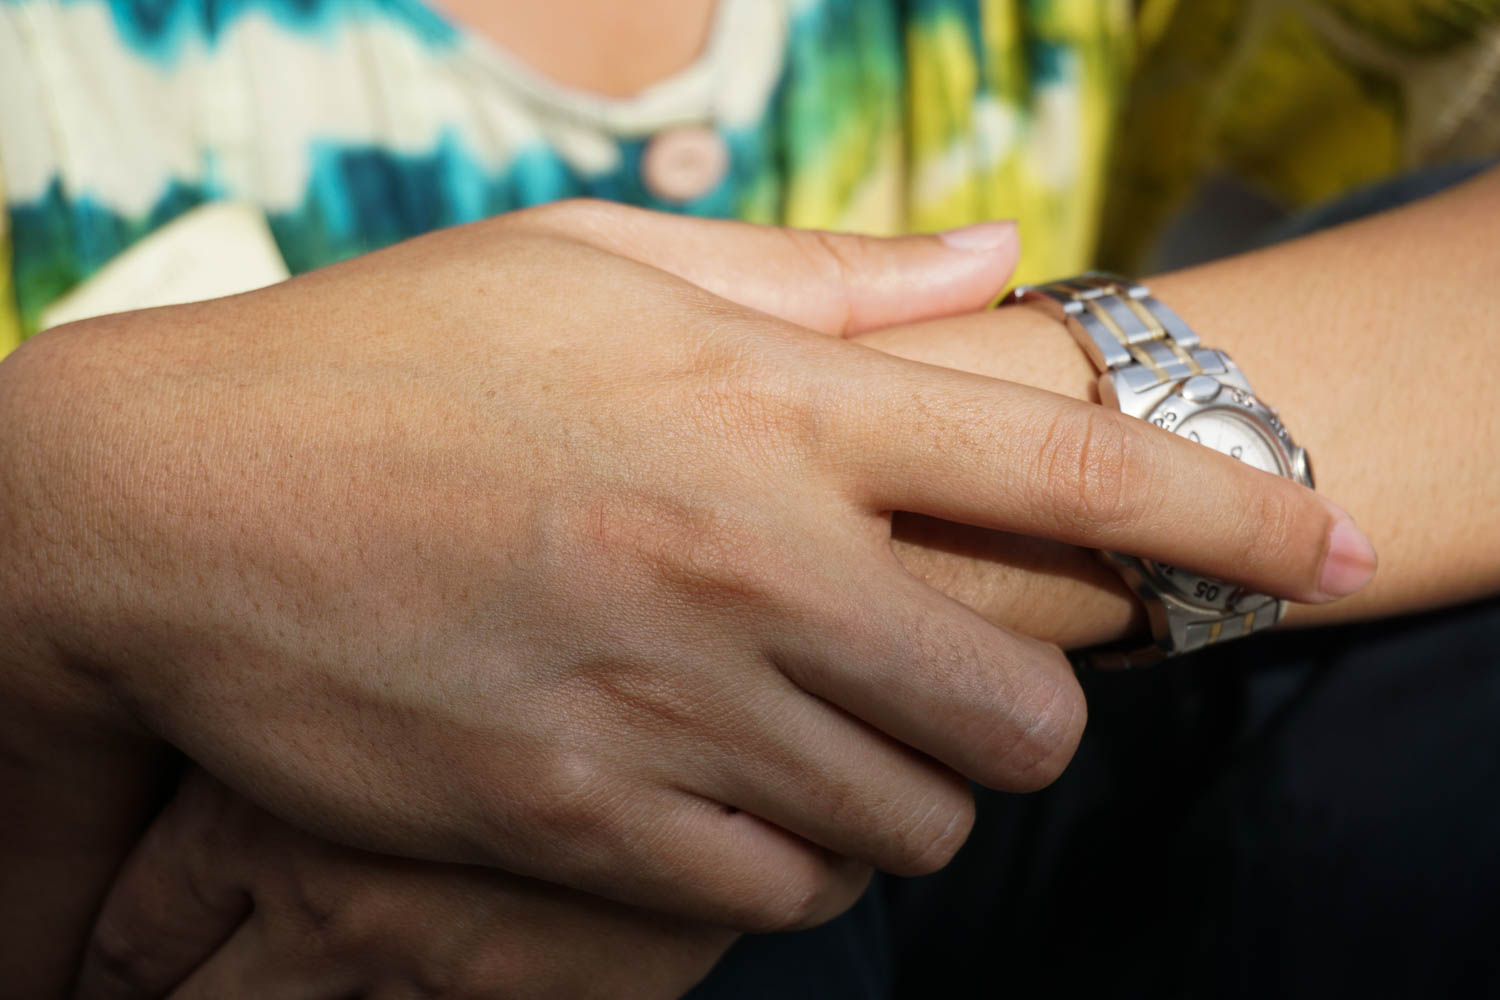 hand covering a watch